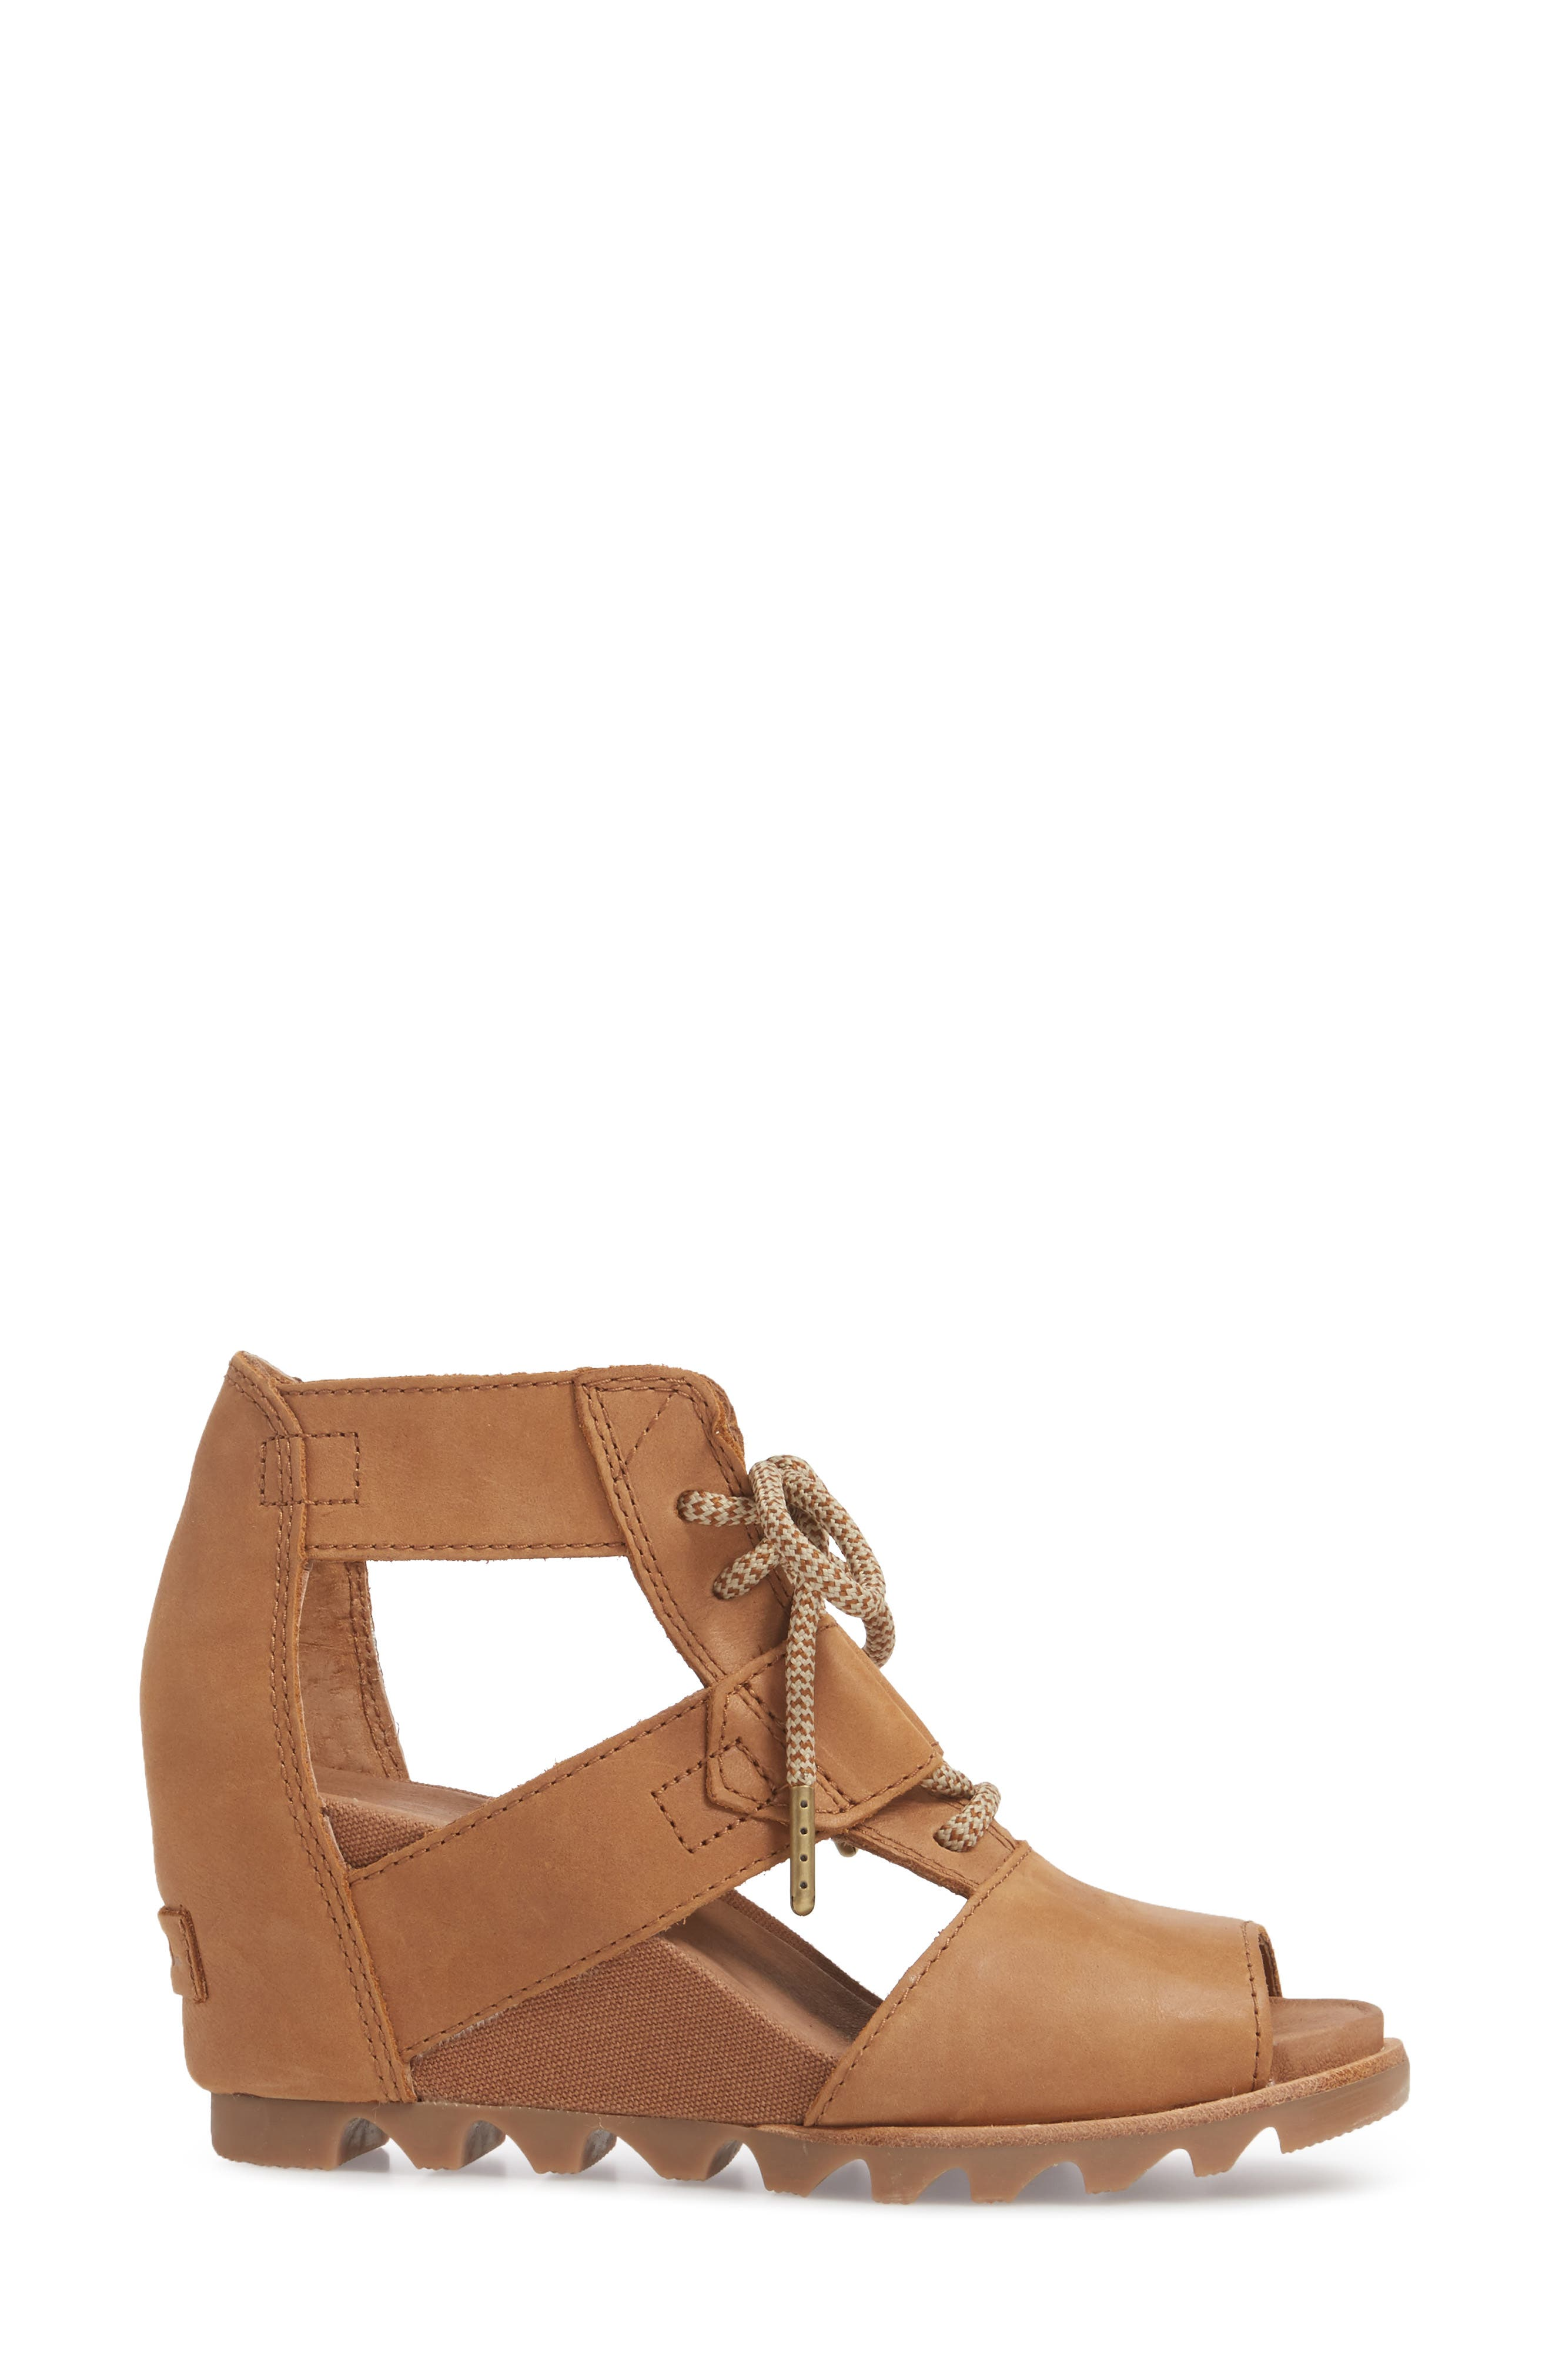 'Joanie' Cage Sandal,                             Alternate thumbnail 16, color,